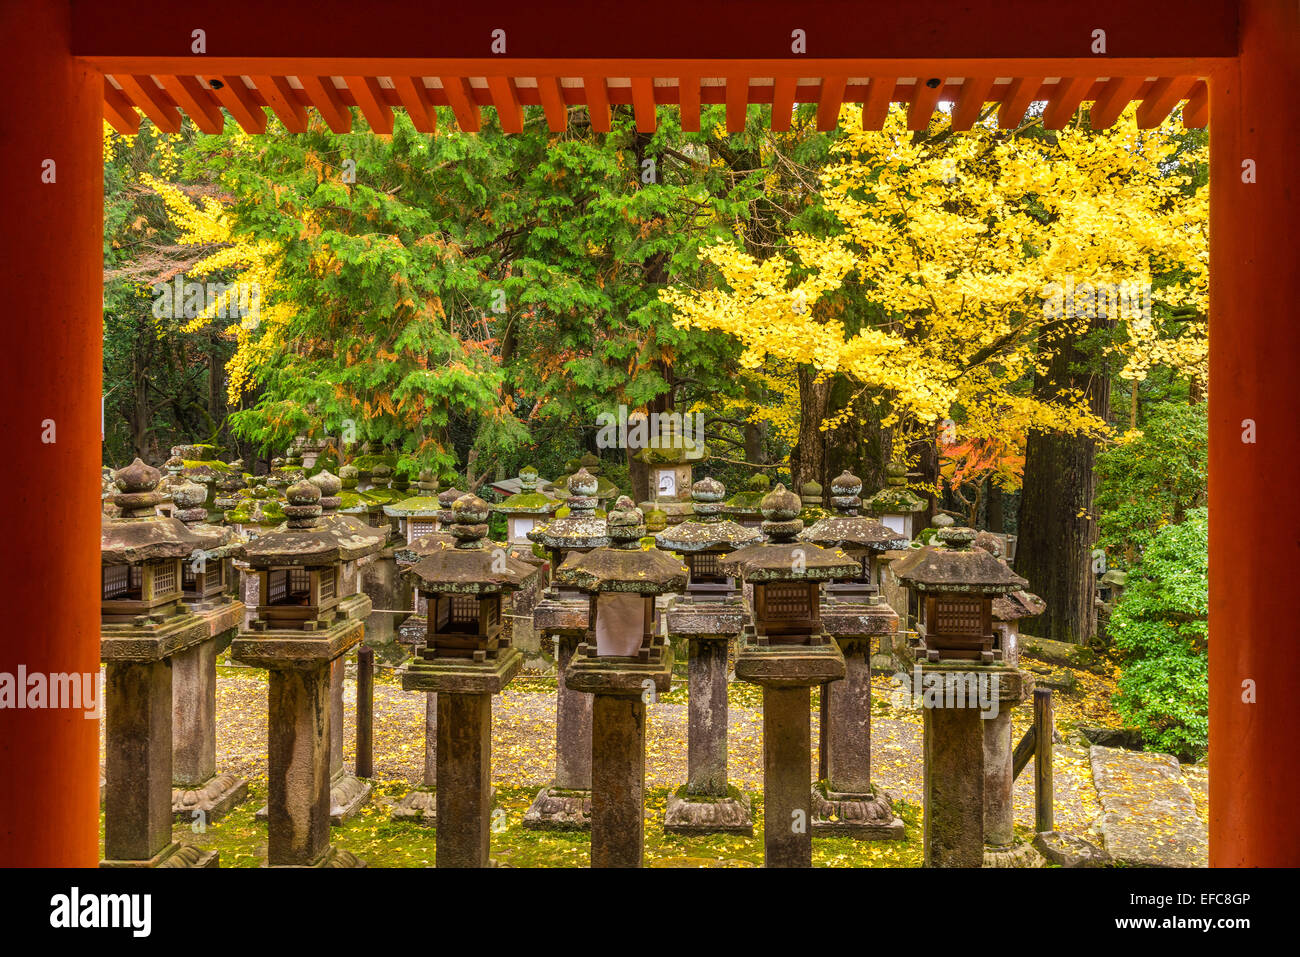 Stone Lantern at Kasuga Taisha in Nara, Japan - Stock Image